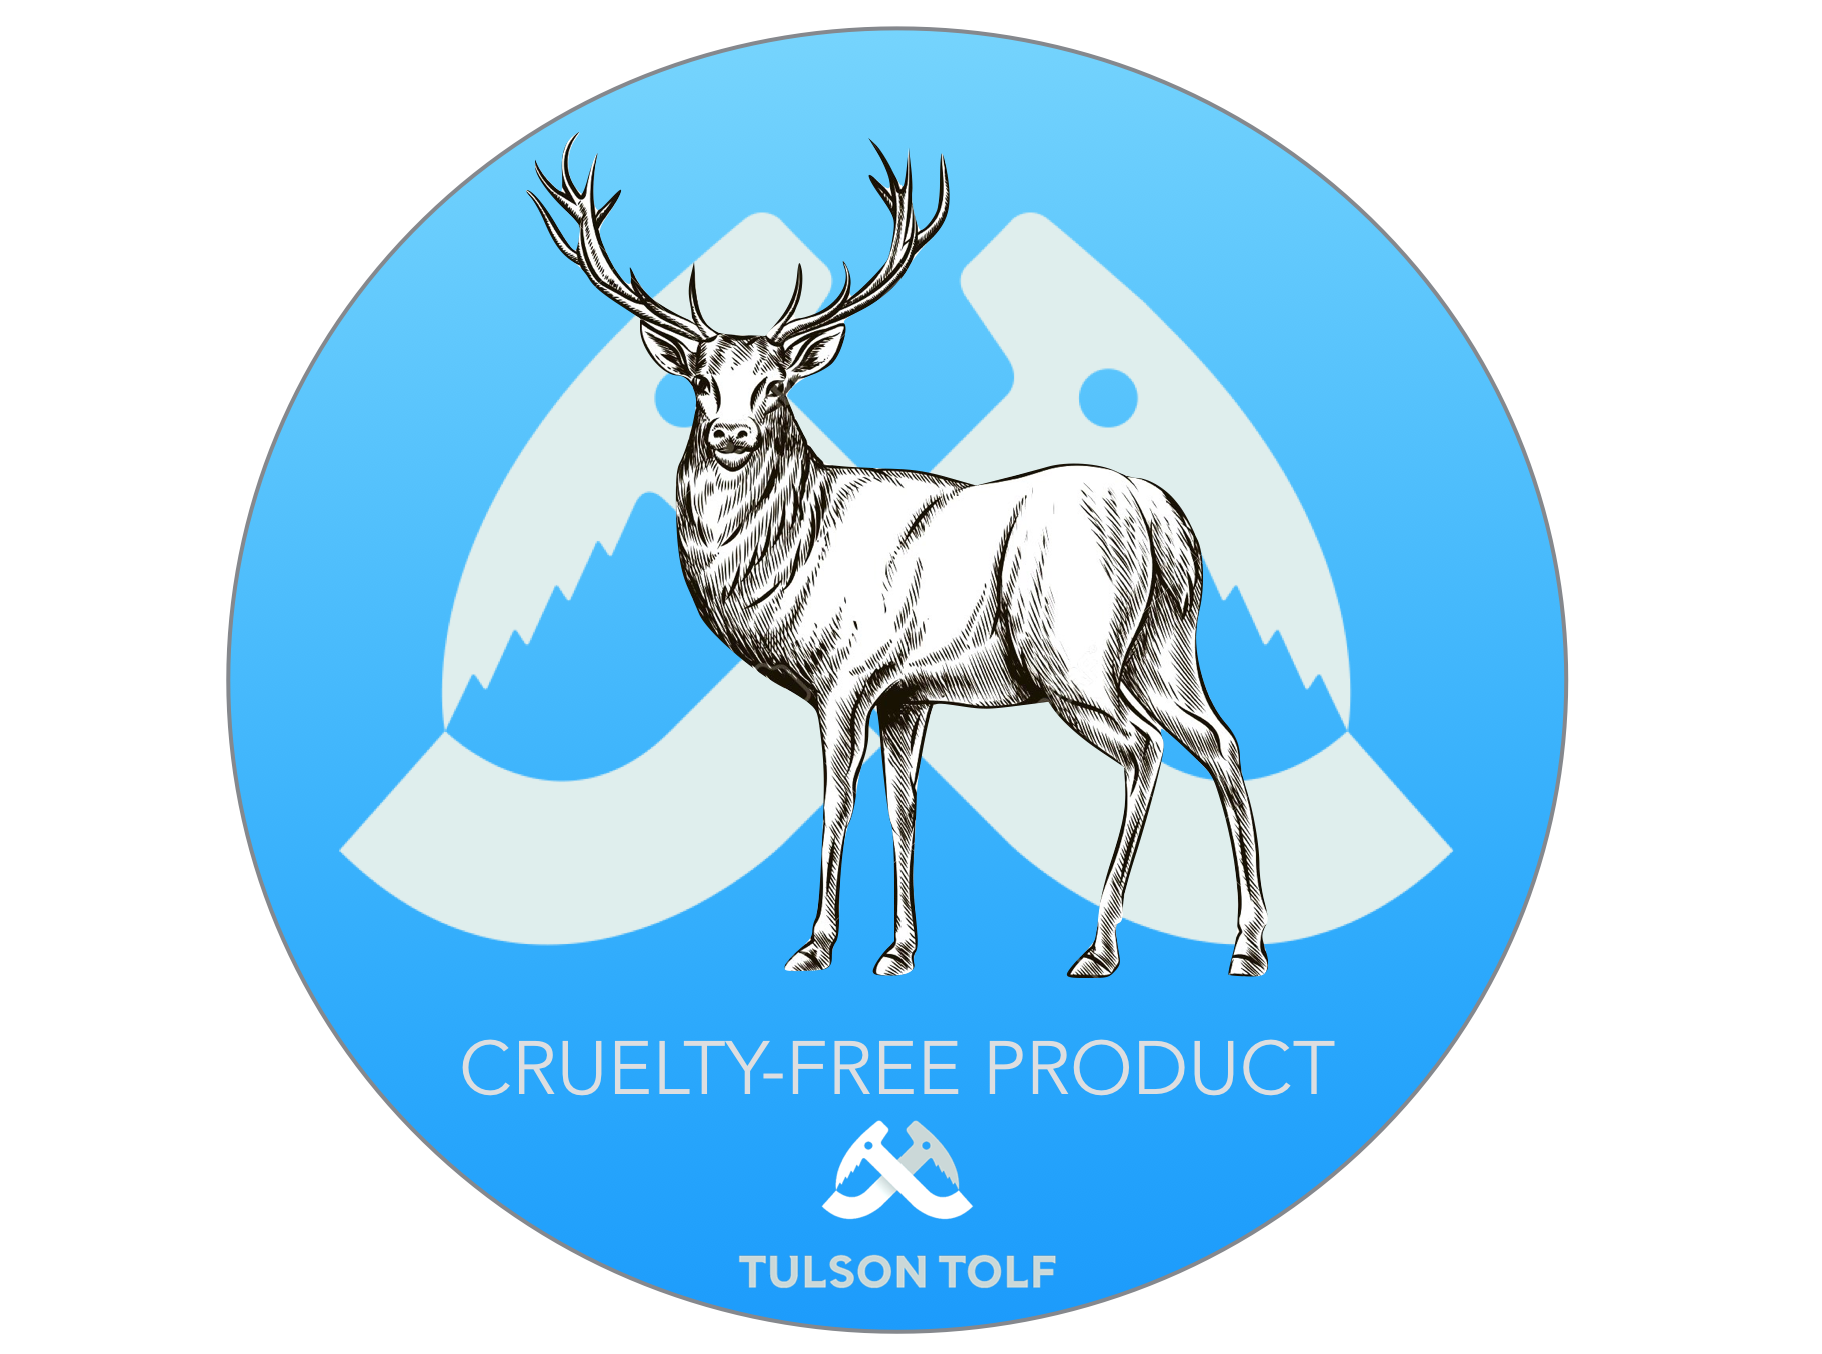 SUSTAINABLE & ANIMAL FREE PRODUCT